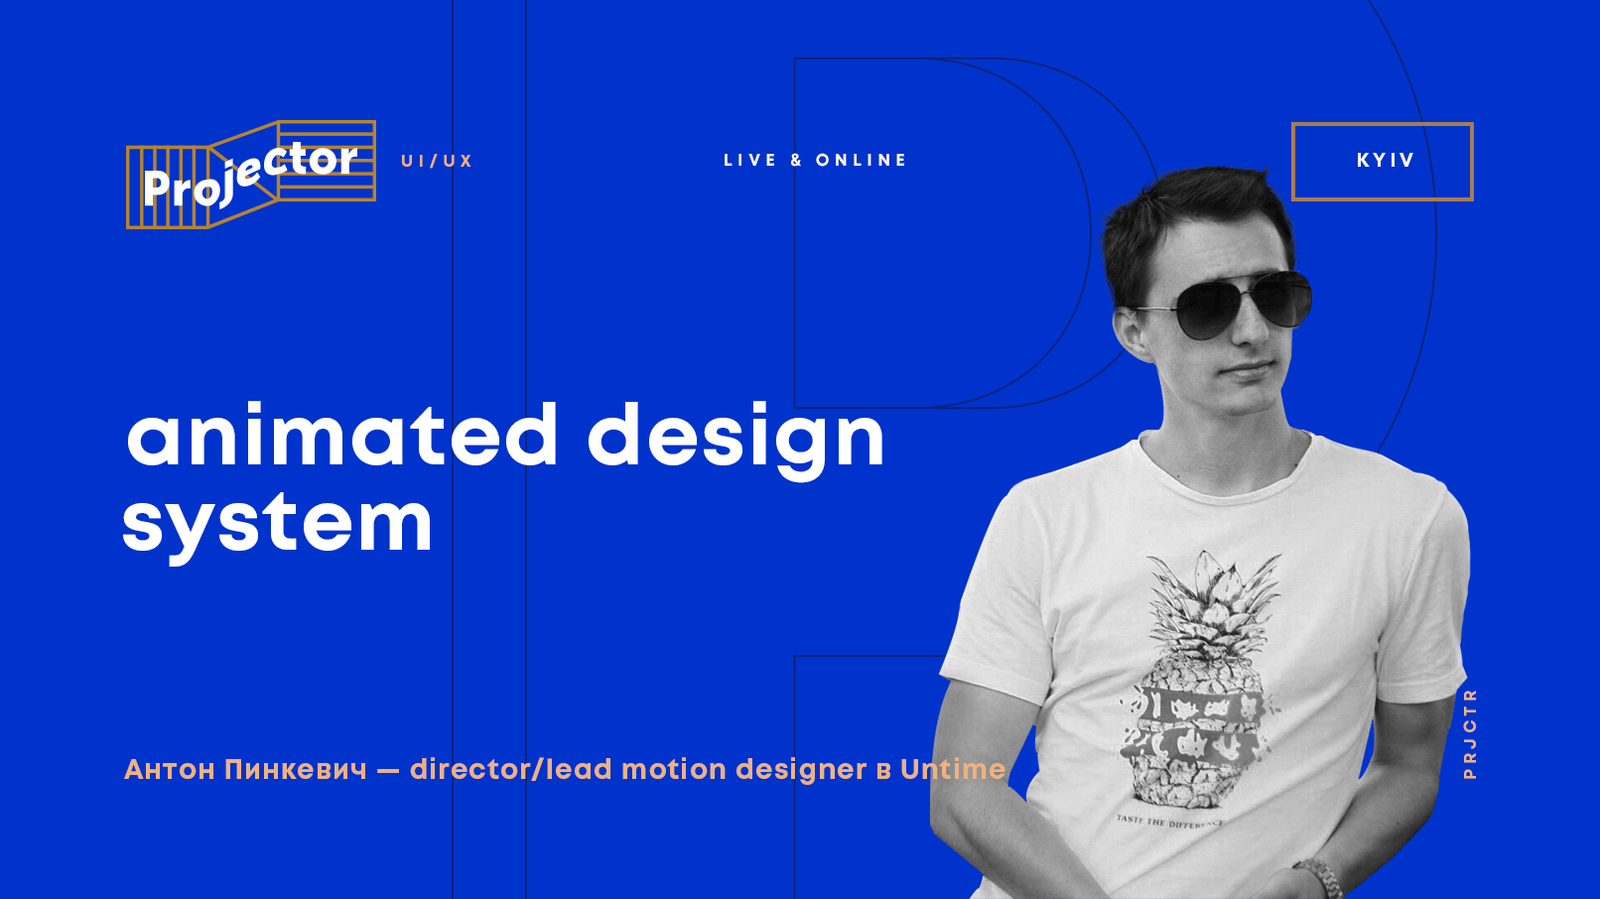 Animated design system